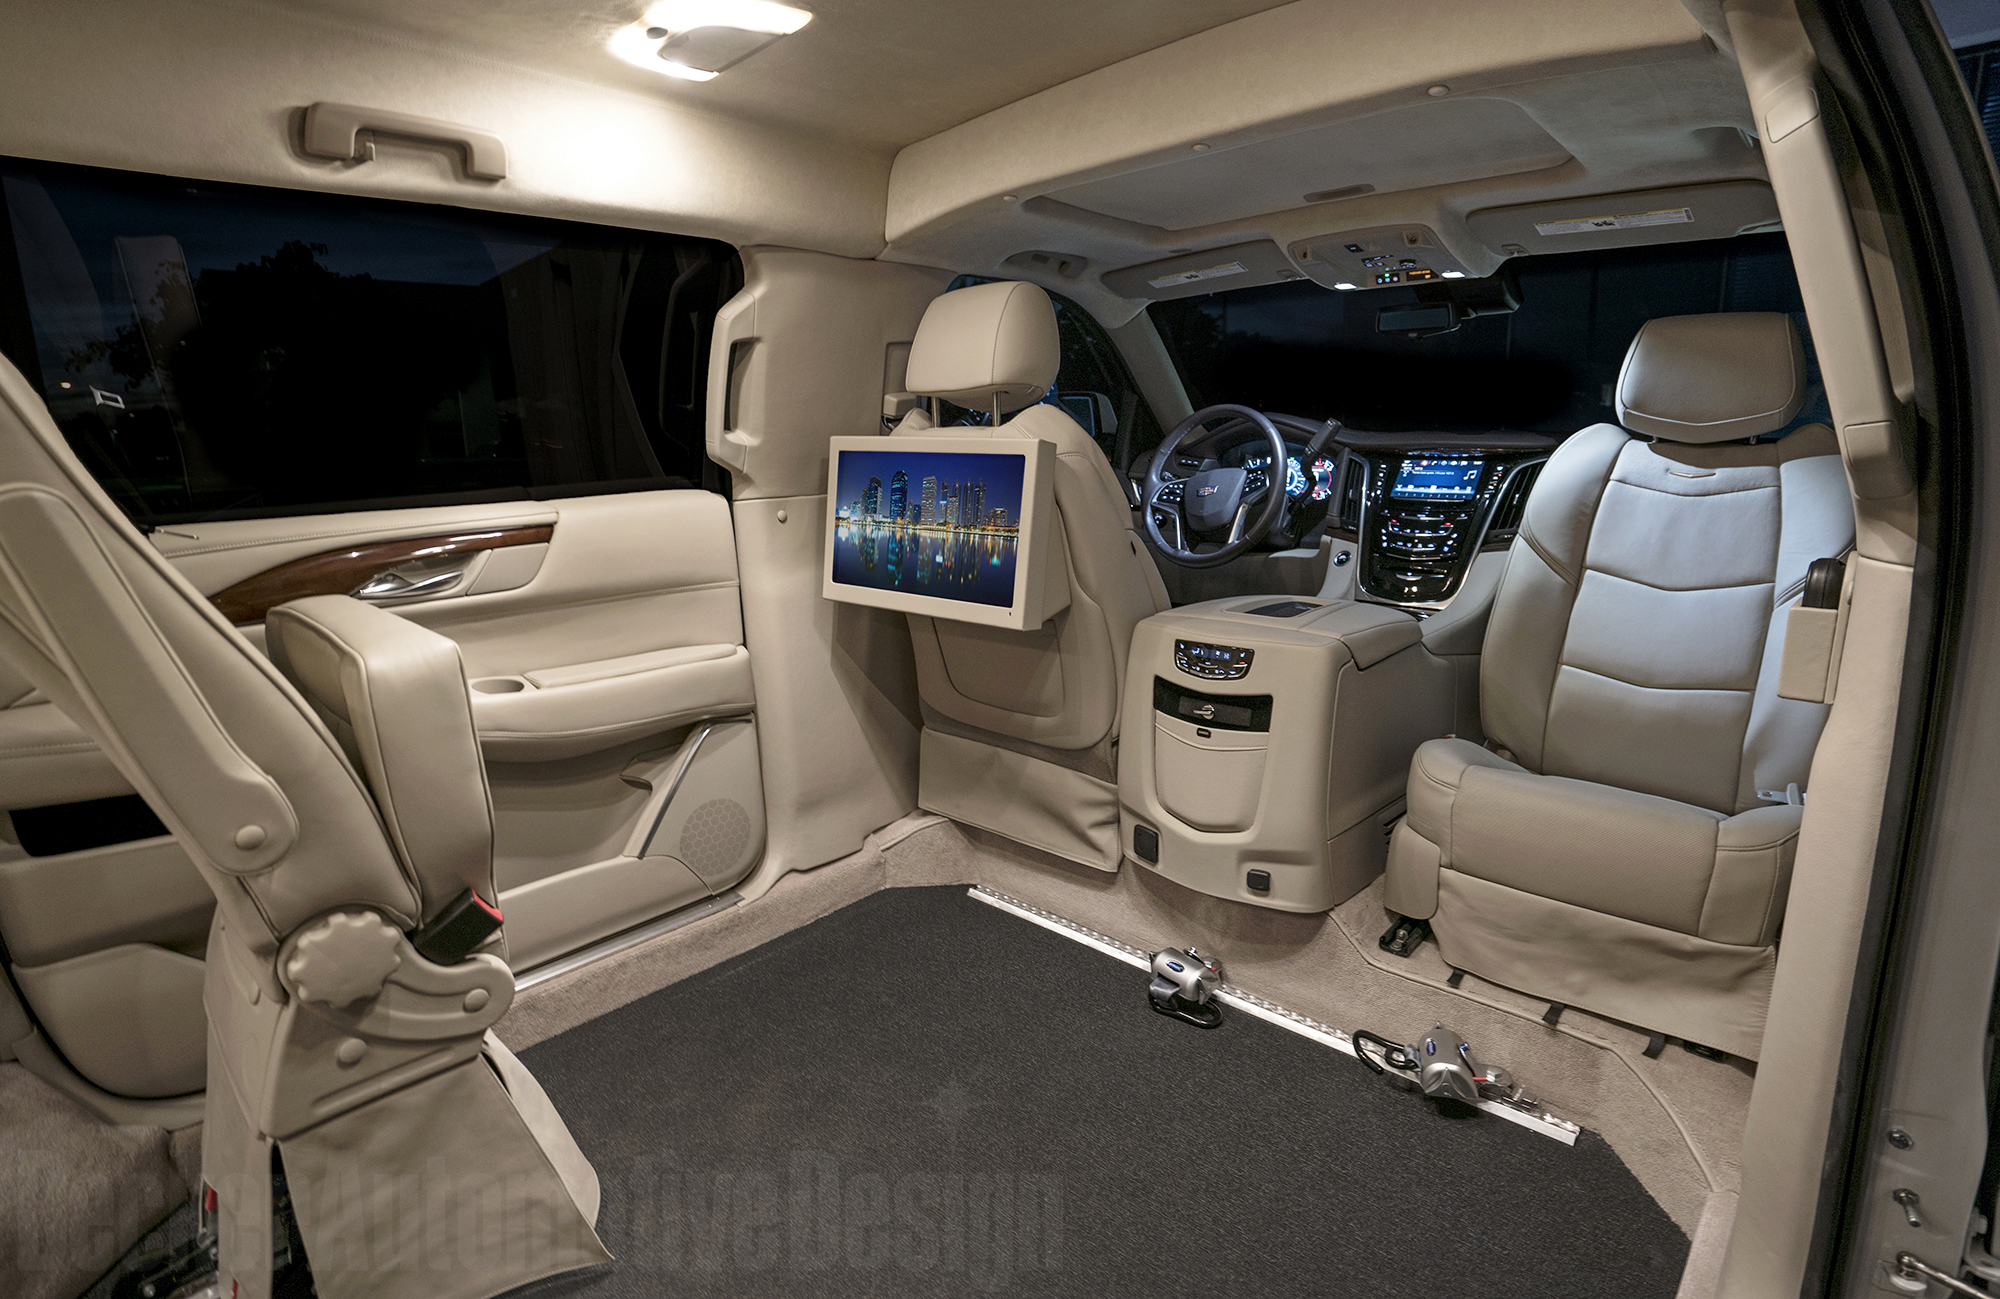 Mercedes Pre Owned >> Becker Automotive Design // Luxury Transport Coaches // Sprinter Van and Cadillac ESV Conversions